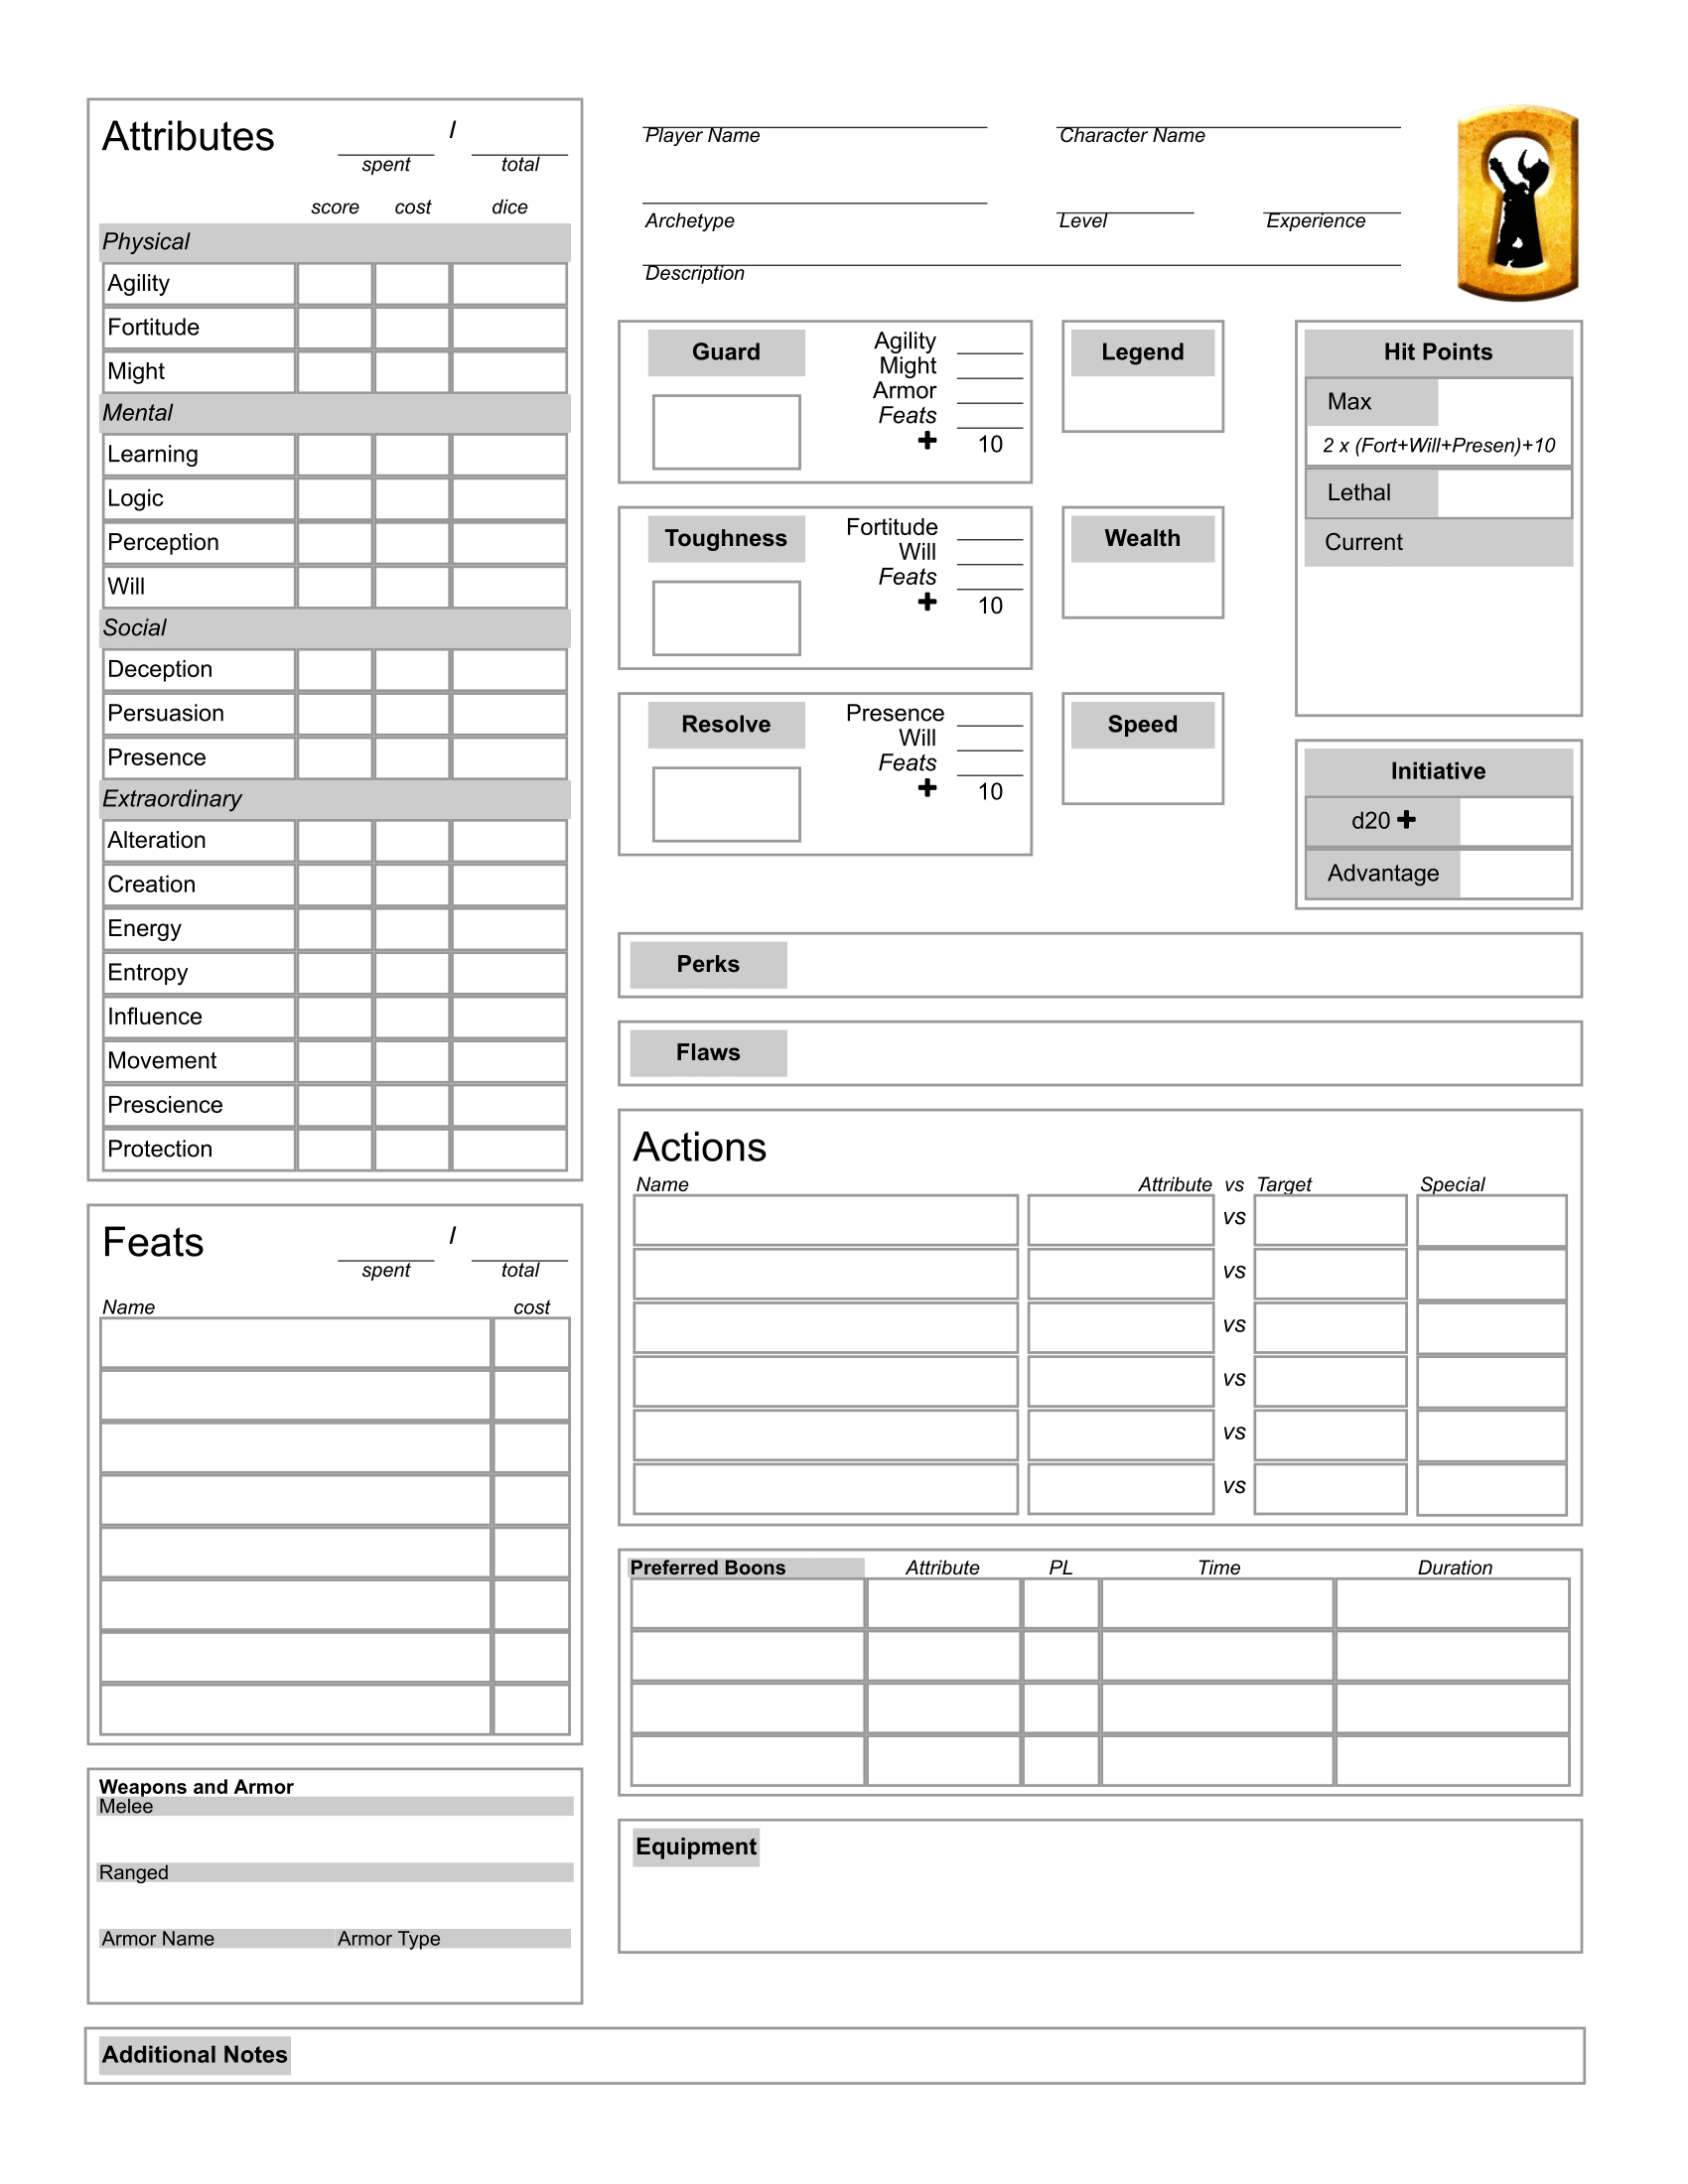 image about 5e Character Sheet Printable titled Personality Builder: Open up Legend RPG HeroMuster